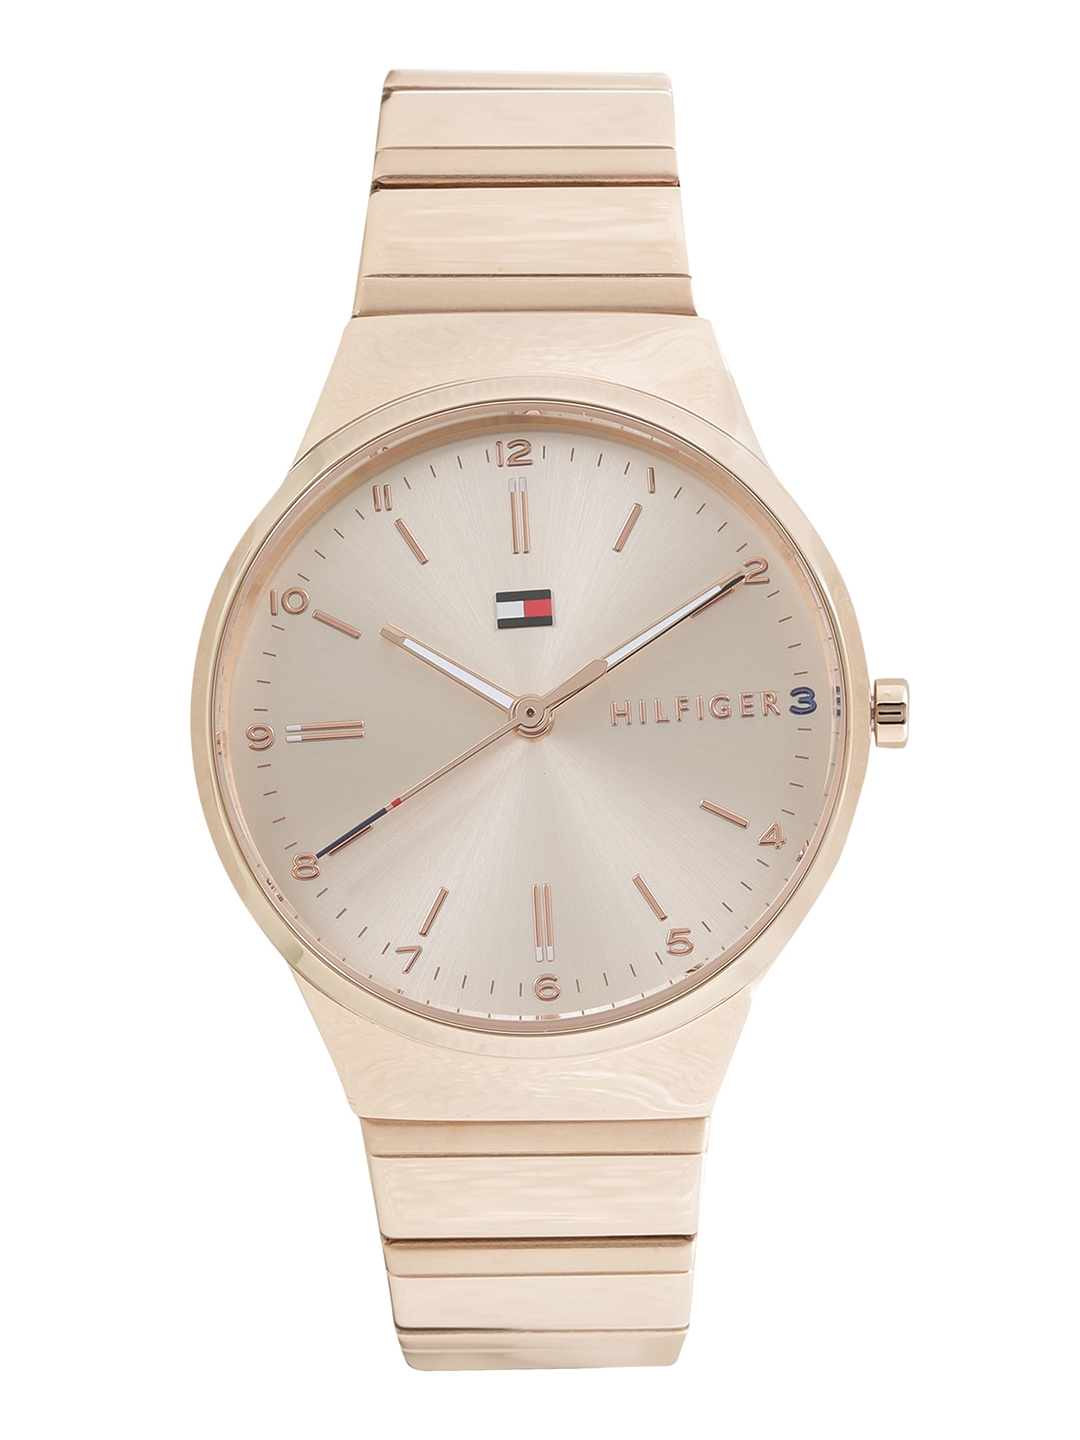 77e9a0546 Buy Tommy Hilfiger Women Rose Gold Analogue Watch TH1781799 ...